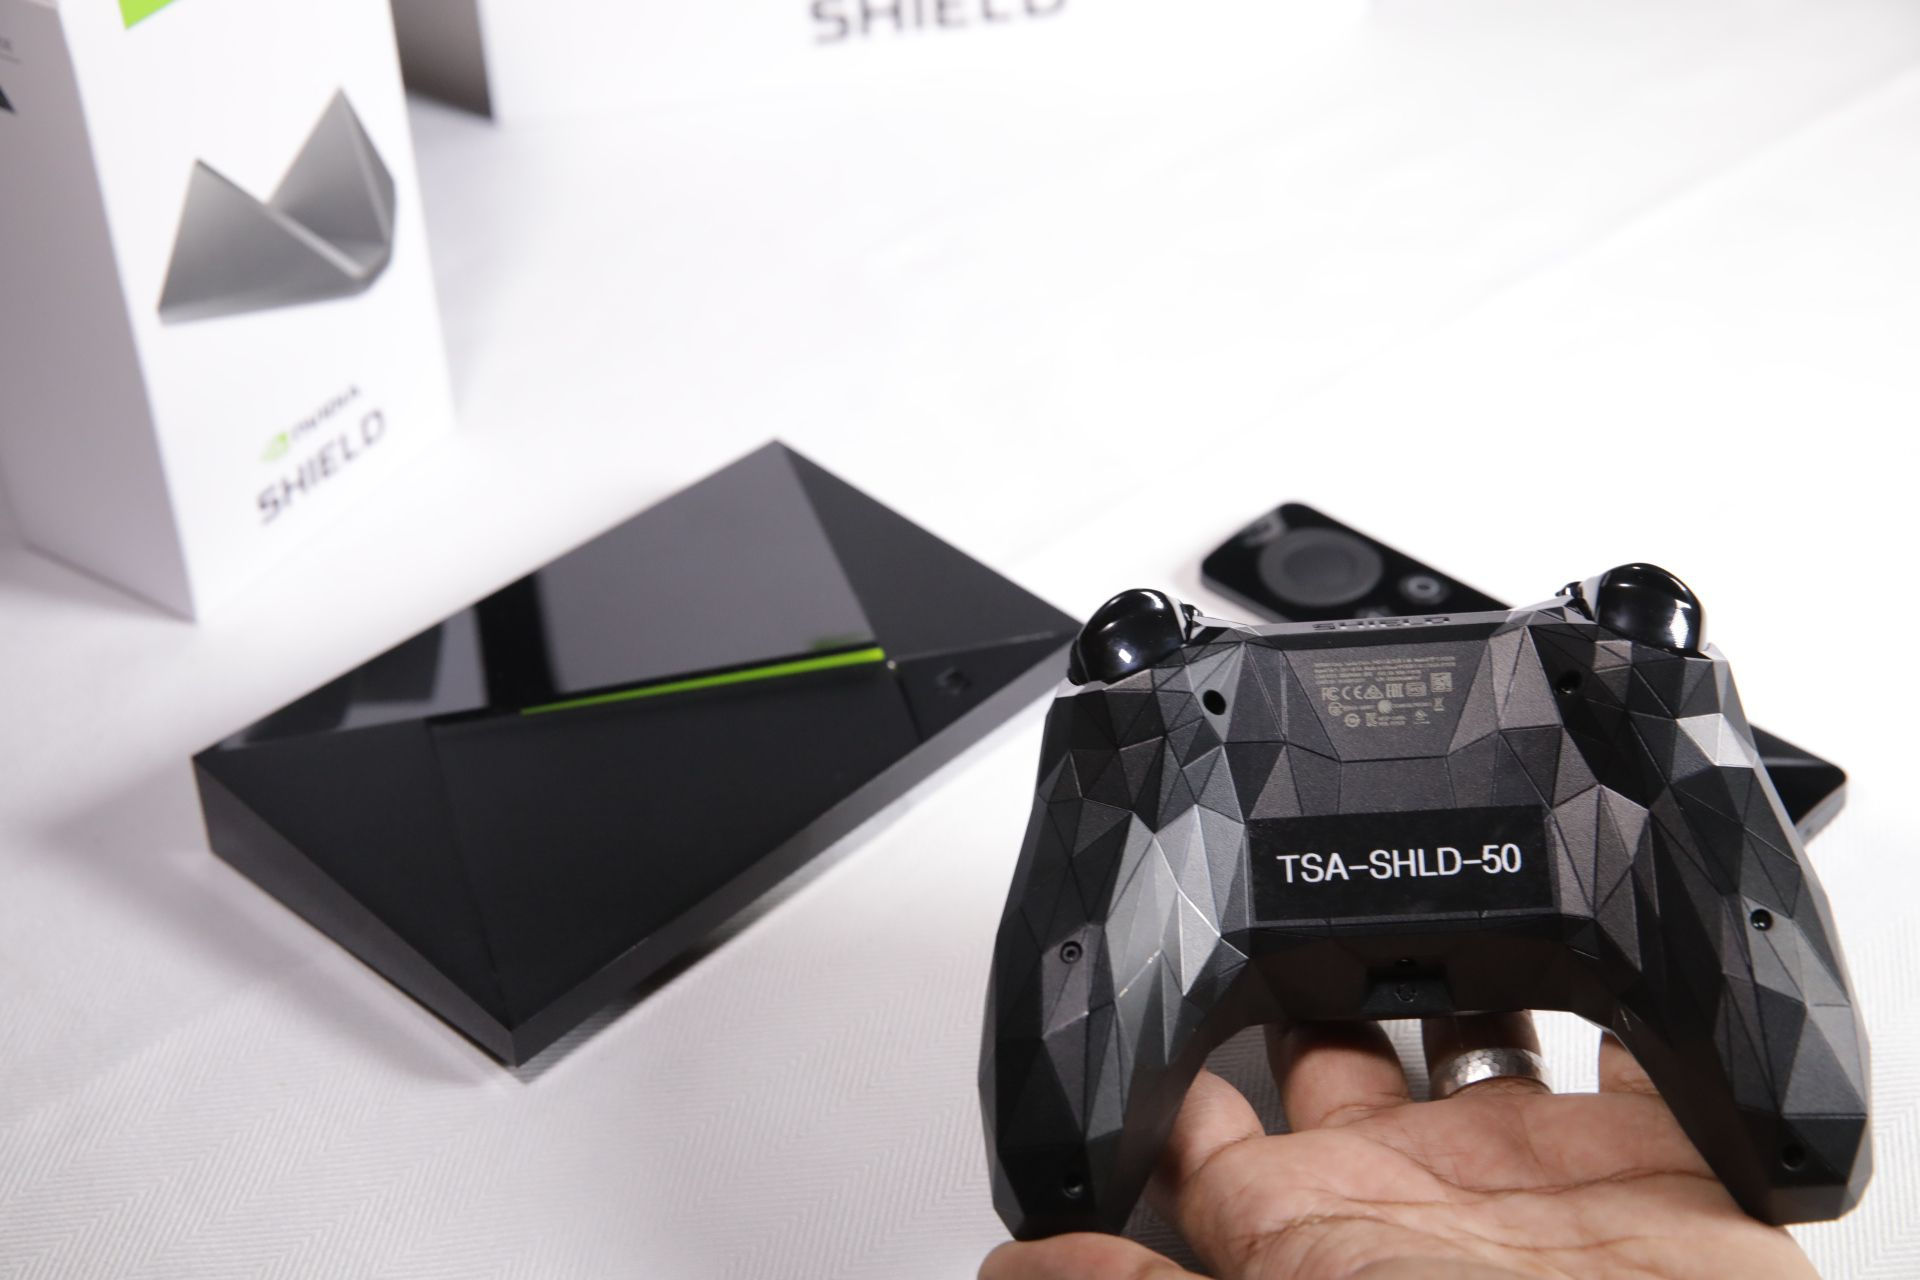 Handson with Nvidia's new 4K HDRstreaming Shield with